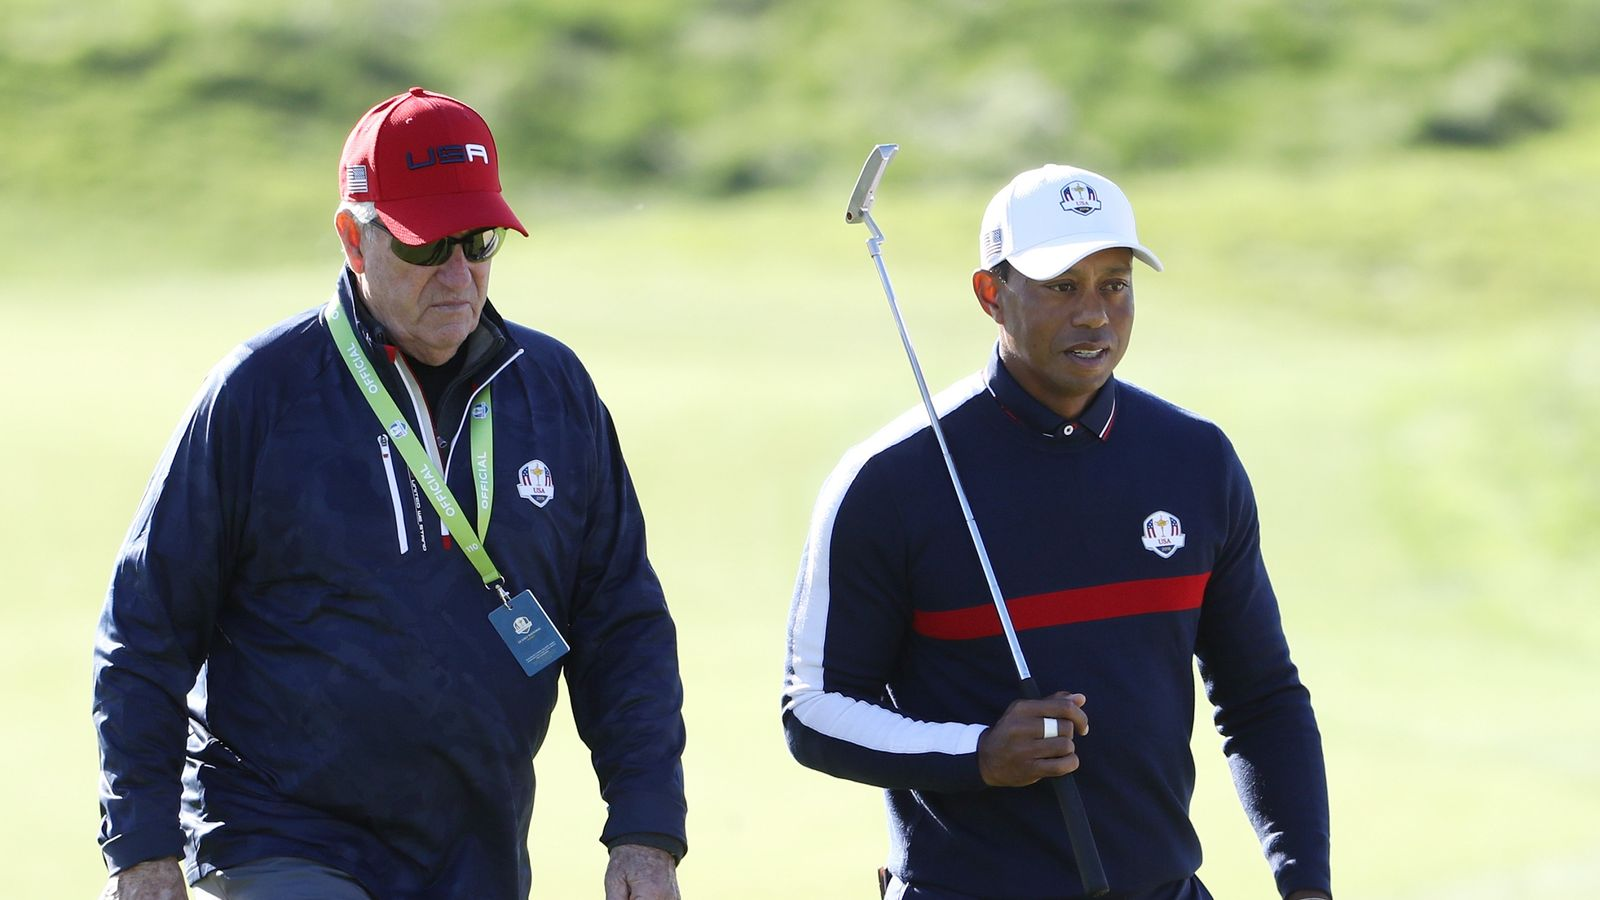 ac198954 Tiger Woods back to his best and not to blame for Ryder Cup record, says  Butch Harmon | Golf News | Sky Sports